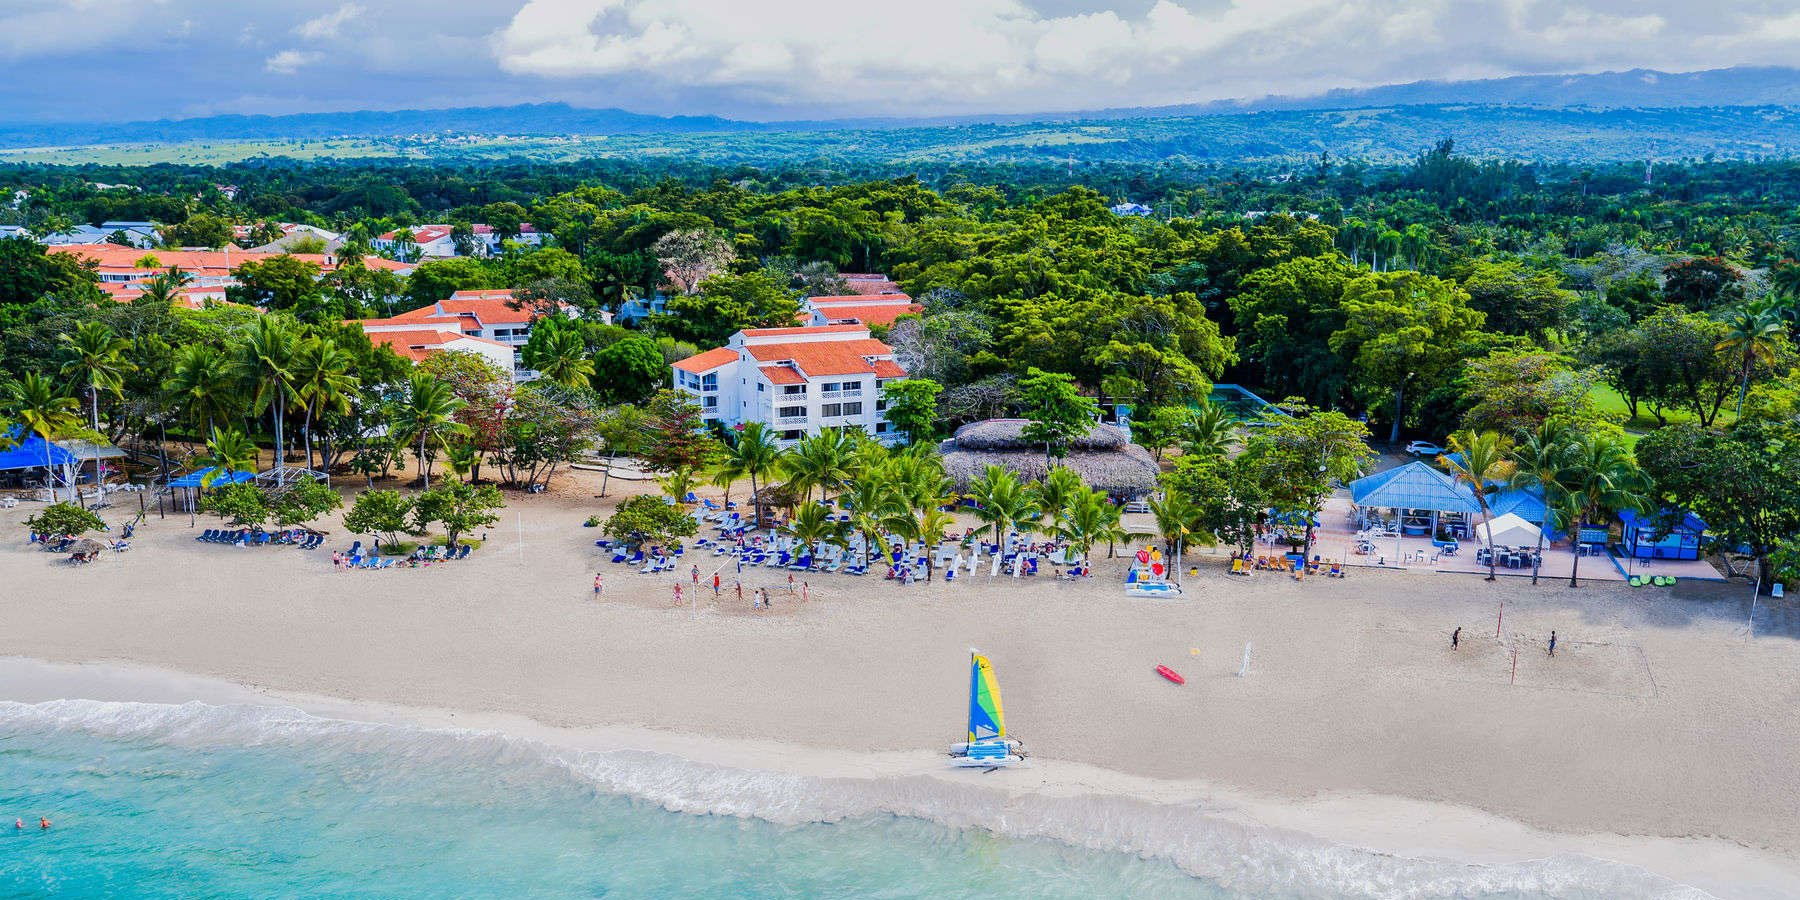 Viva Wyndham V Heavens - Puerto Plata Vacations